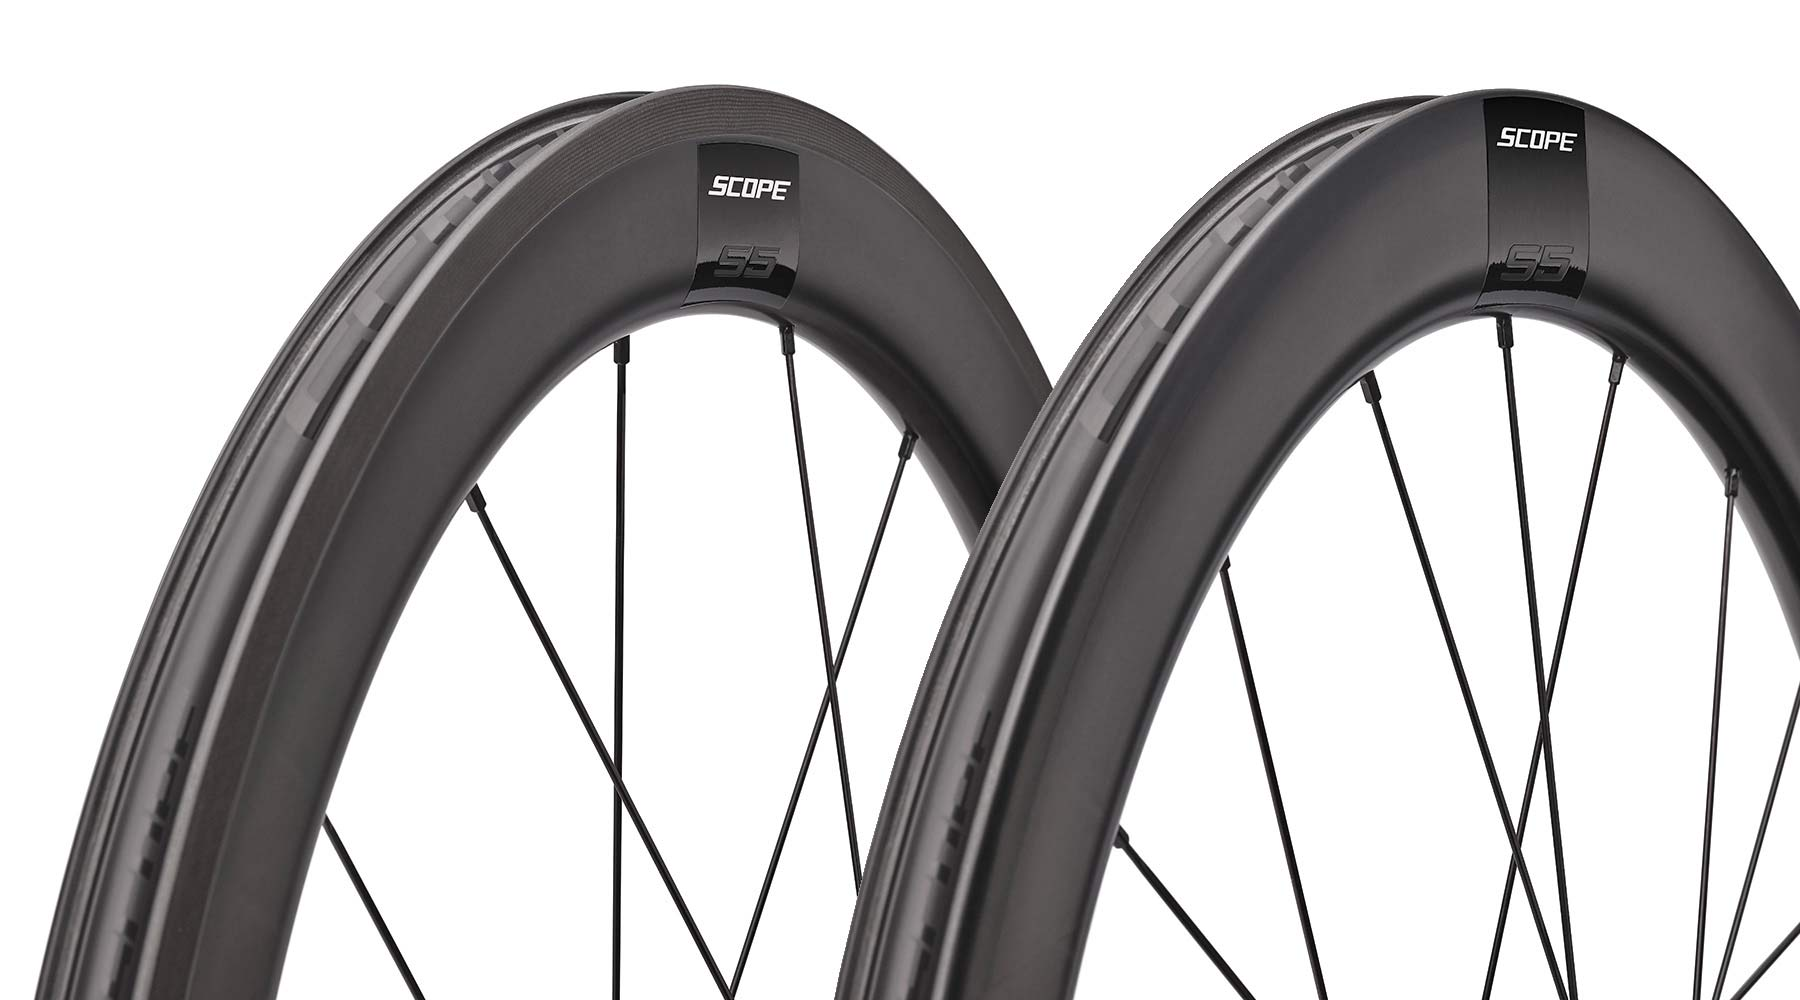 Scope Sport affordable carbon tubeless road wheels, 998€ for rim or disc brakes